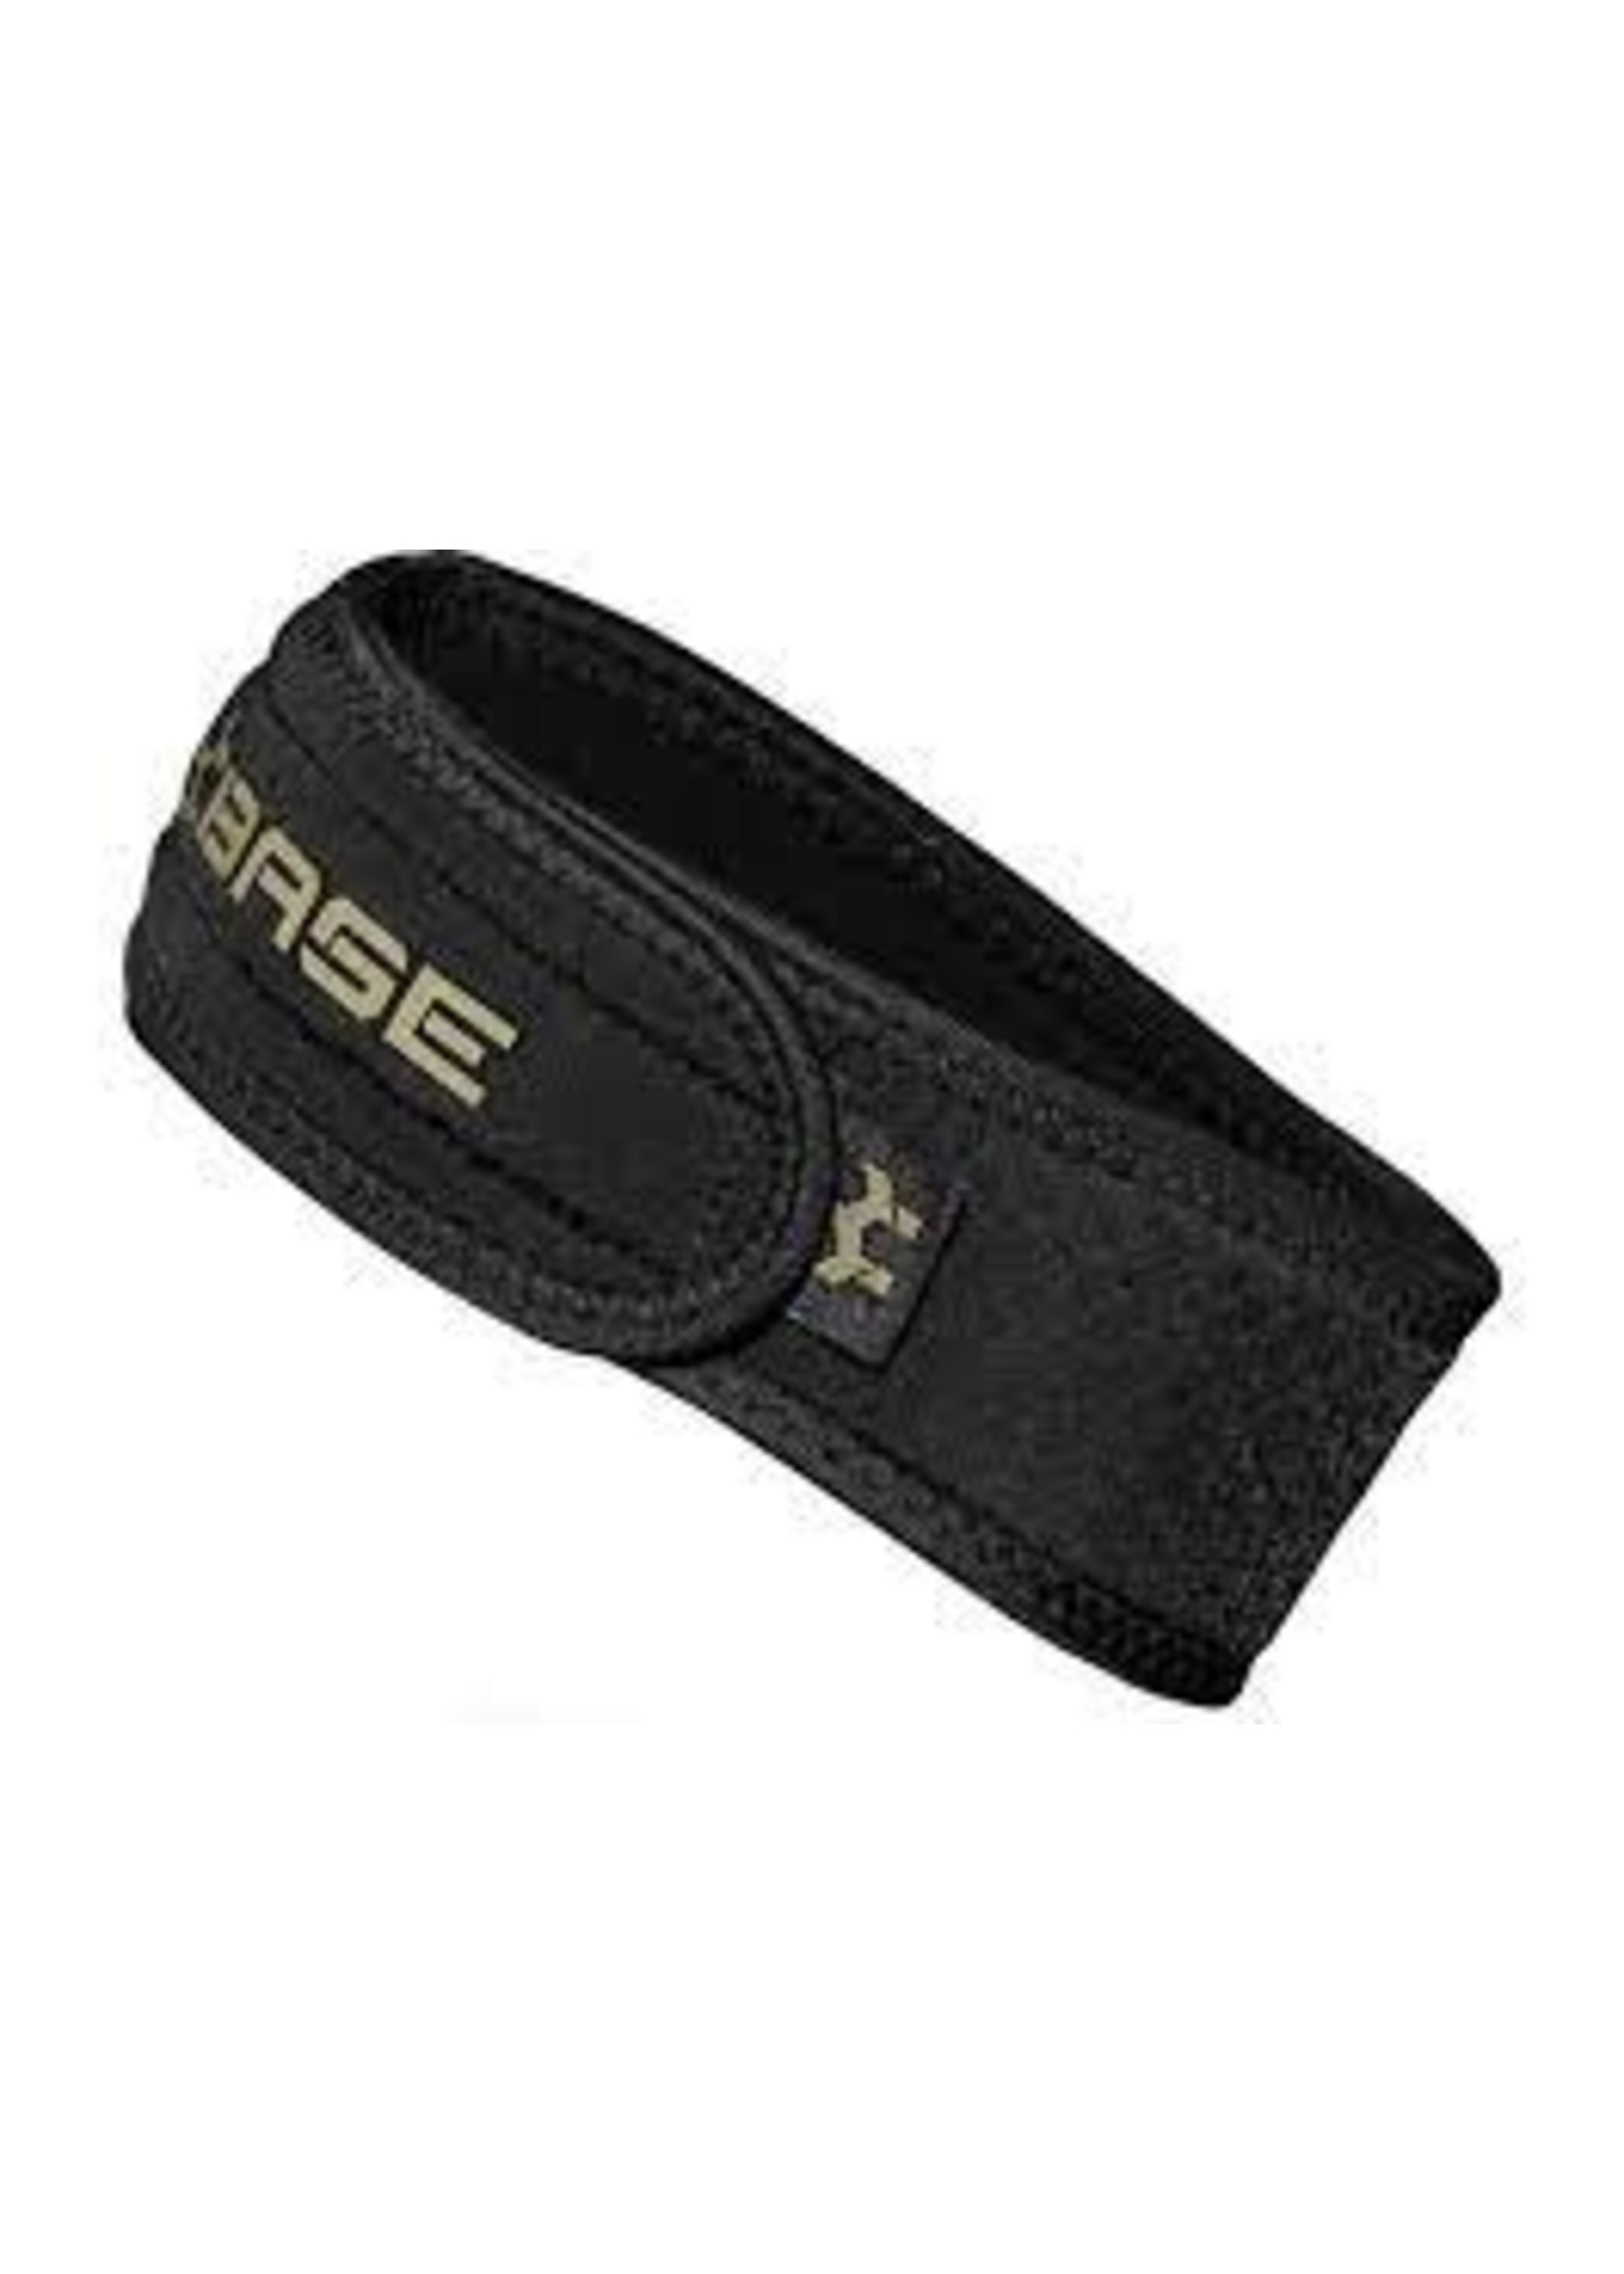 BASE PRODUCTS NECK PROTECTOR